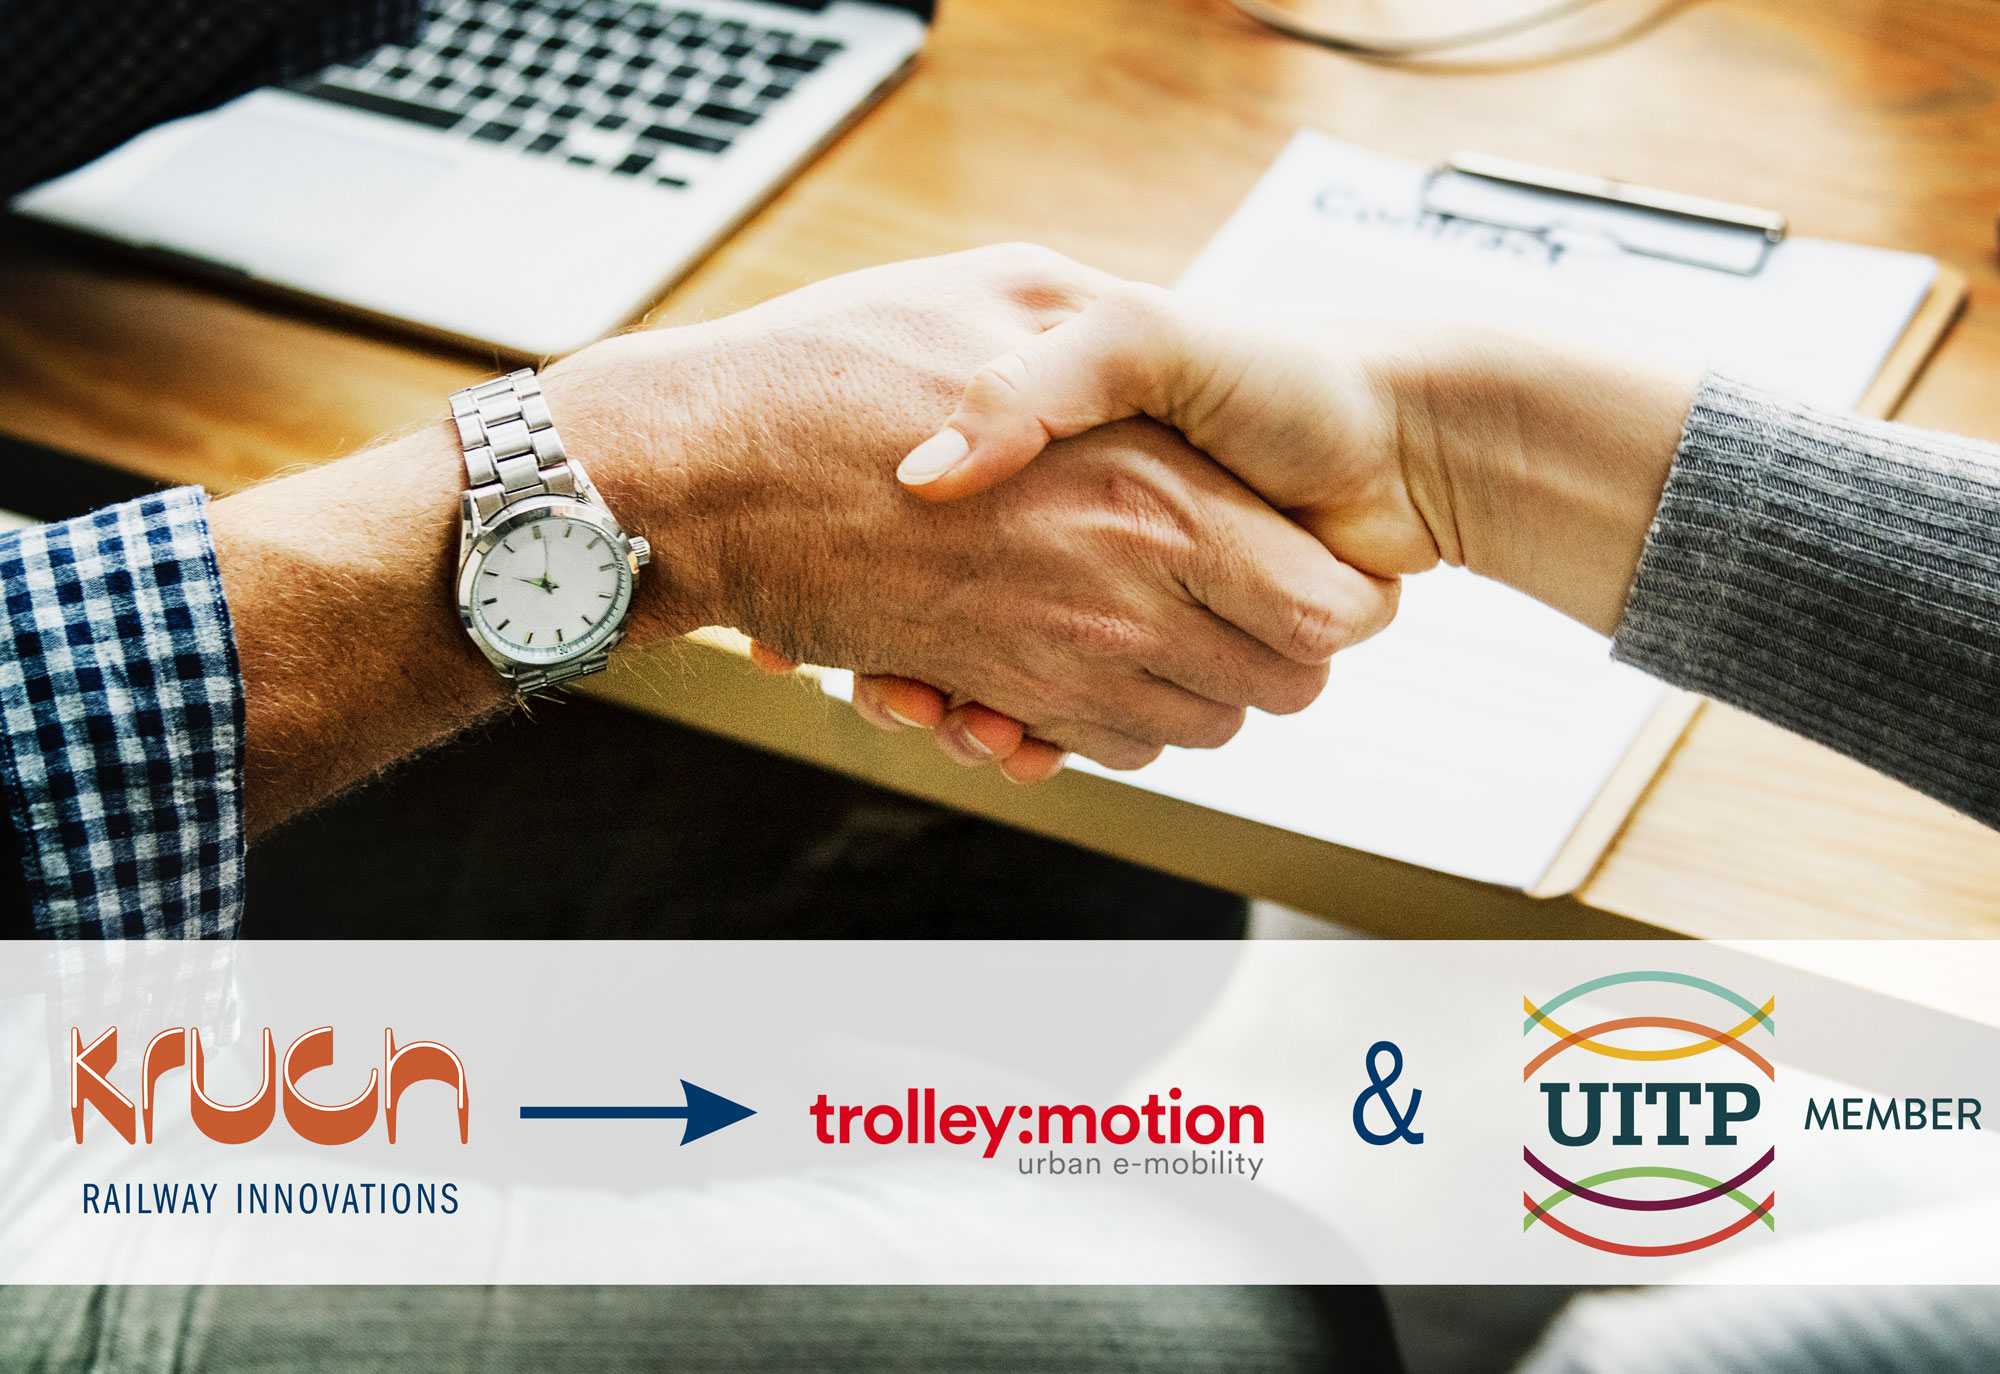 KRUCH is a member of Trolleymotion and UITP